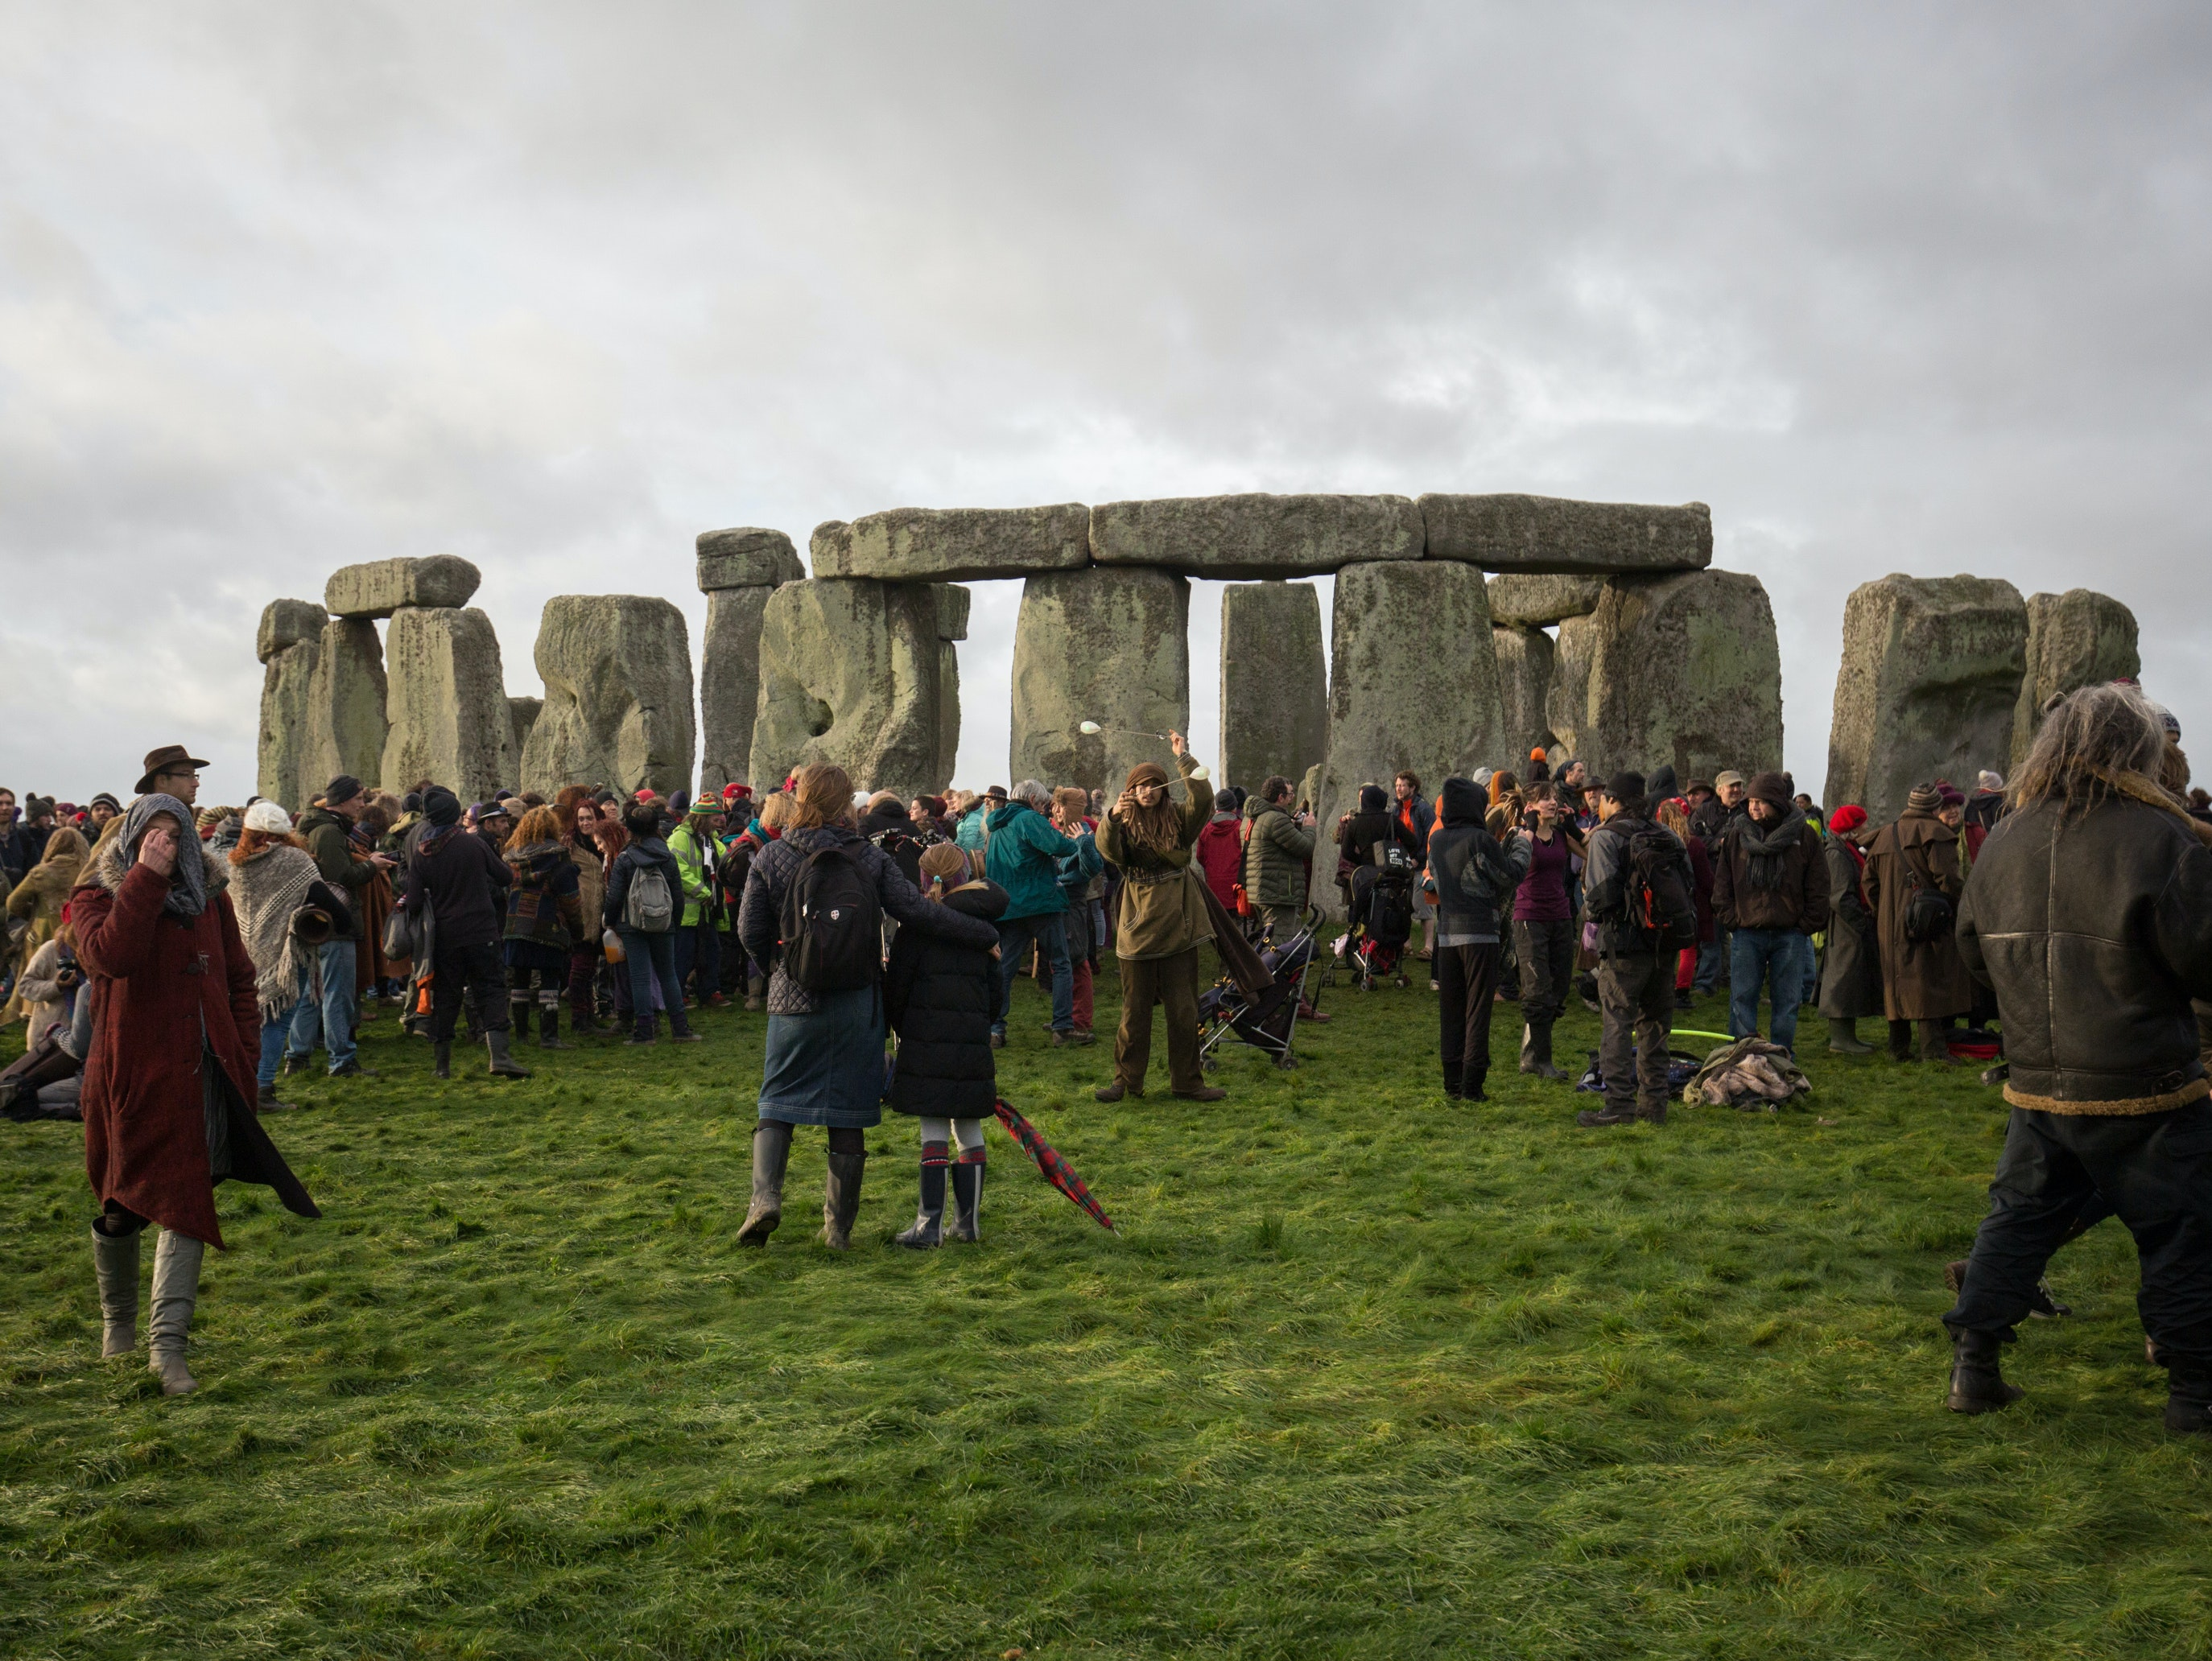 5 Interesting Facts About the Winter Solstice Tonight